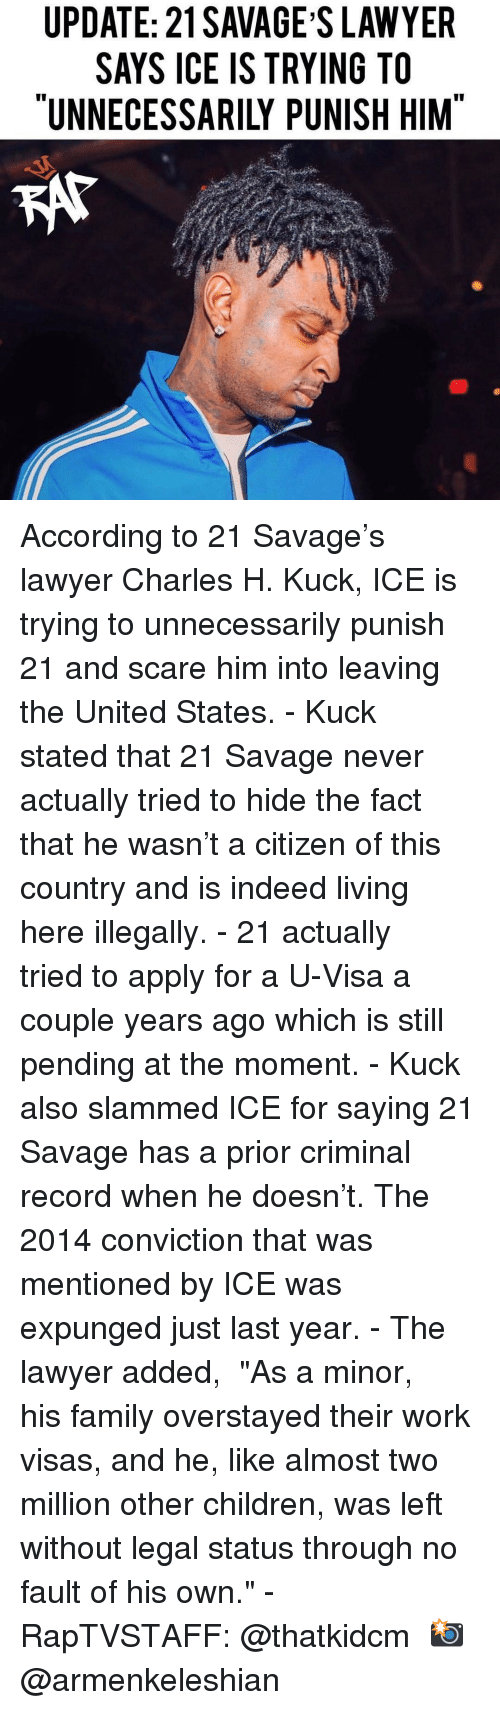 """Children, Family, and Lawyer: UPDATE: 21 SAVAGE S LAWYER  SAYS ICE IS TRYING TO  """"UNNECESSARILY PUNISH HIM According to 21 Savage's lawyer Charles H. Kuck, ICE is trying to unnecessarily punish 21 and scare him into leaving the United States. - Kuck stated that 21 Savage never actually tried to hide the fact that he wasn't a citizen of this country and is indeed living here illegally. - 21 actually tried to apply for a U-Visa a couple years ago which is still pending at the moment. - Kuck also slammed ICE for saying 21 Savage has a prior criminal record when he doesn't. The 2014 conviction that was mentioned by ICE was expunged just last year. - The lawyer added,  """"As a minor, his family overstayed their work visas, and he, like almost two million other children, was left without legal status through no fault of his own."""" - RapTVSTAFF: @thatkidcm 📸 @armenkeleshian"""